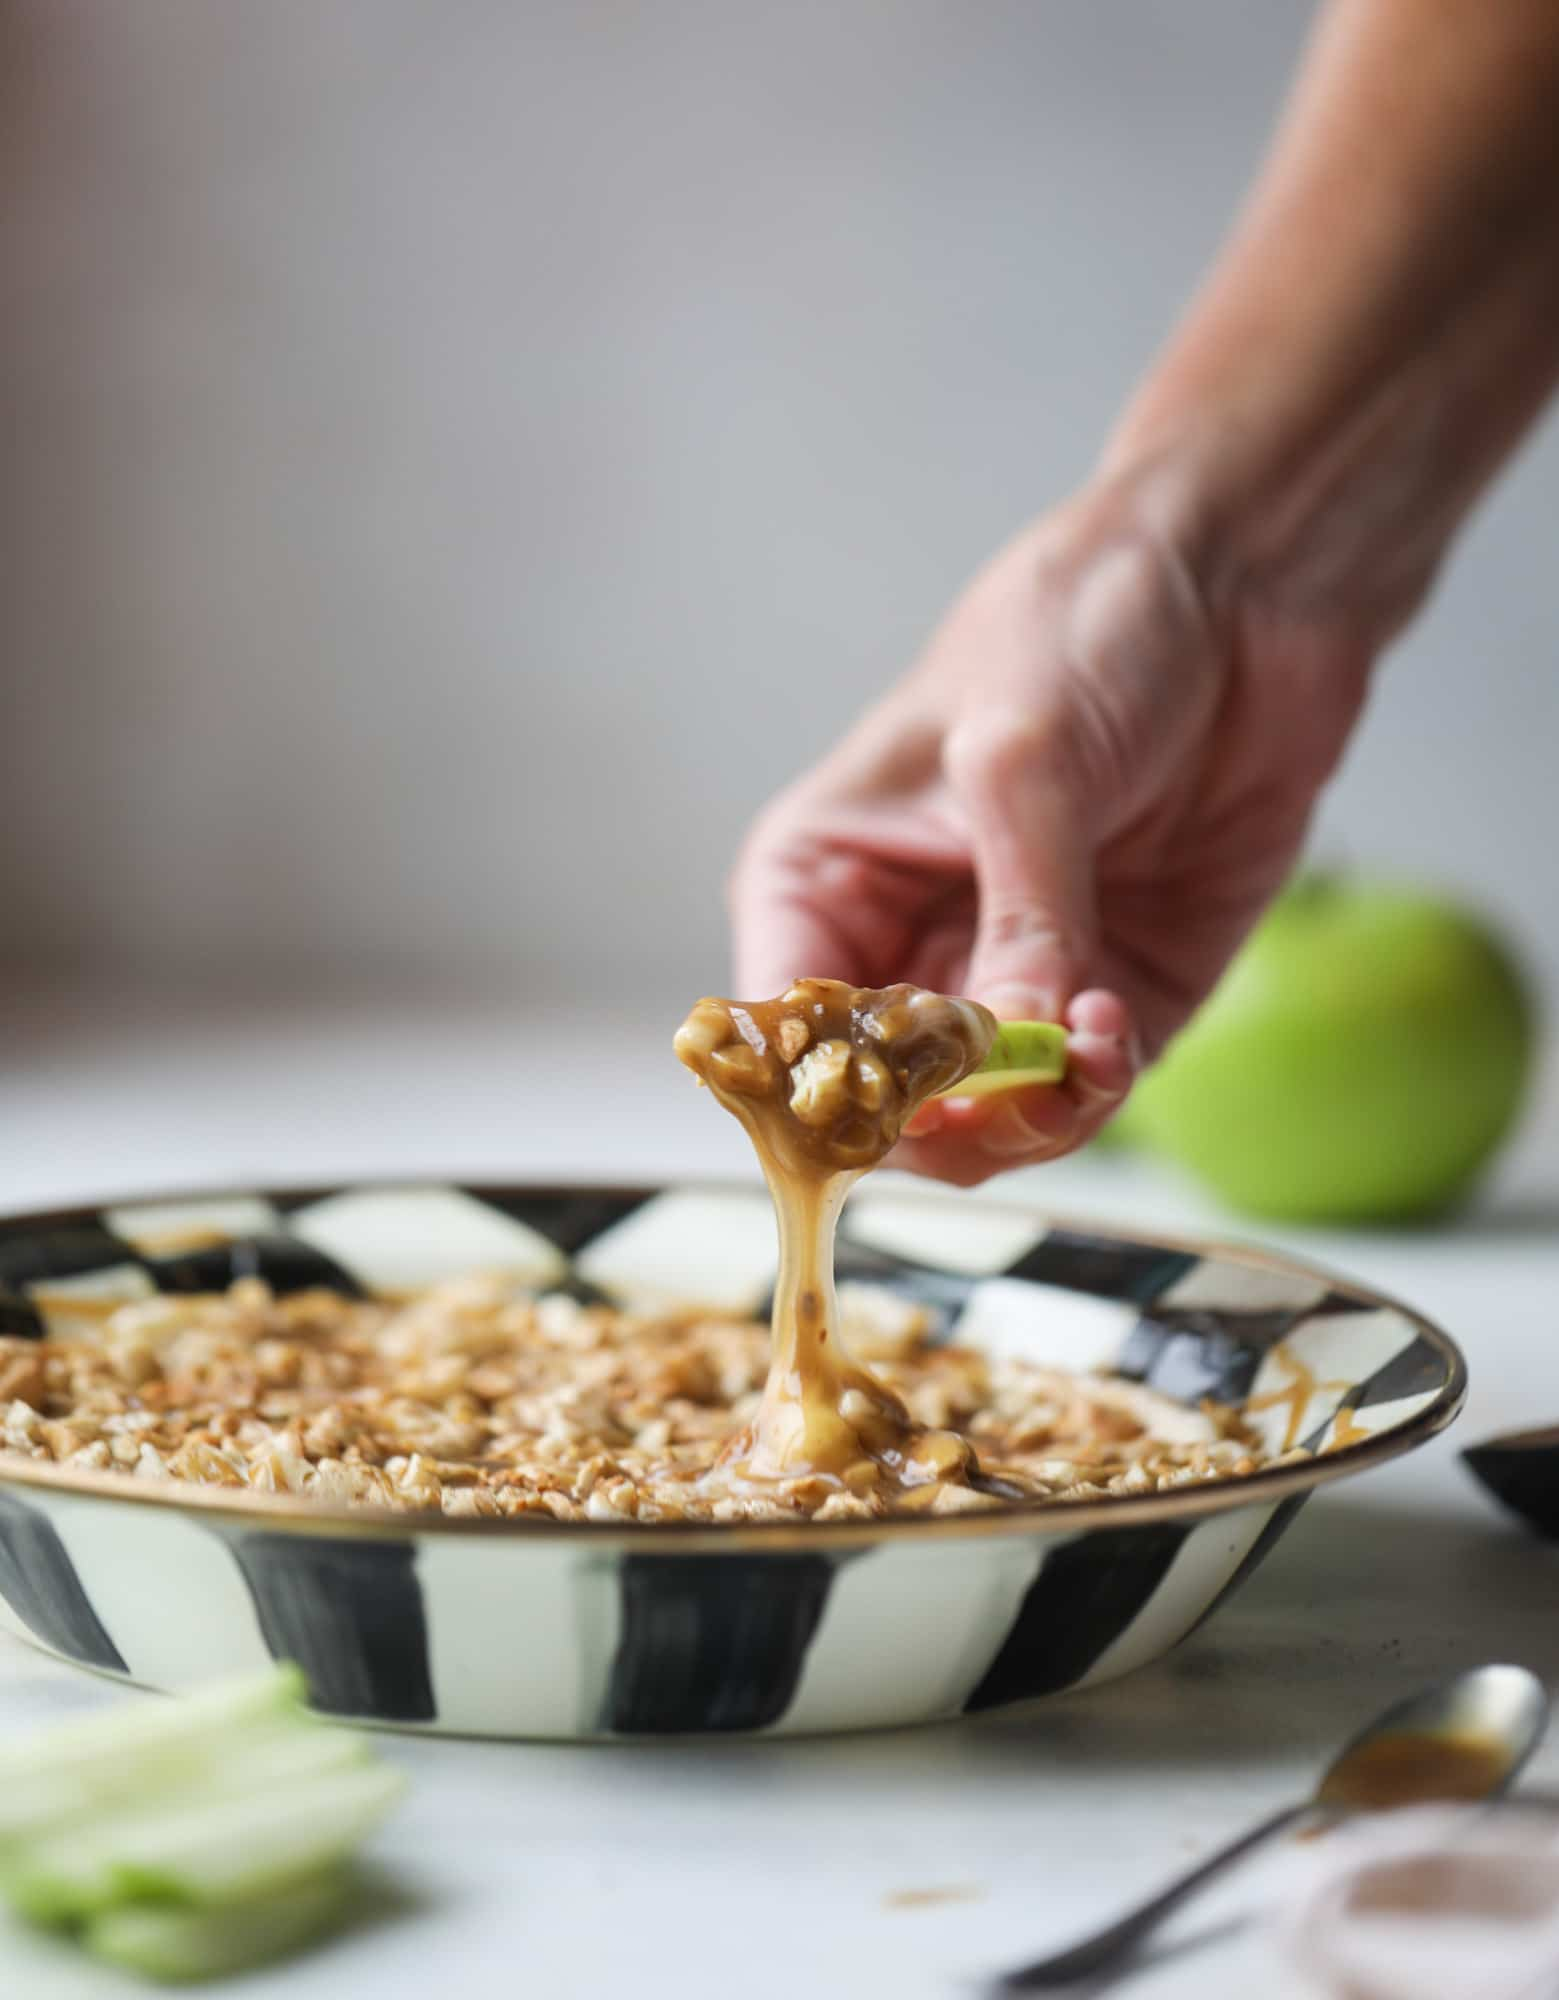 This caramel apple dip is my take on the old-school cream cheese based dip that is super delicious! Here, we have a mascarpone base with a bourbon caramel sauce, topped with roasted chopped cashews. Just add apples! I howsweeteats.com #caramel #apple #dip #appetizer #snack